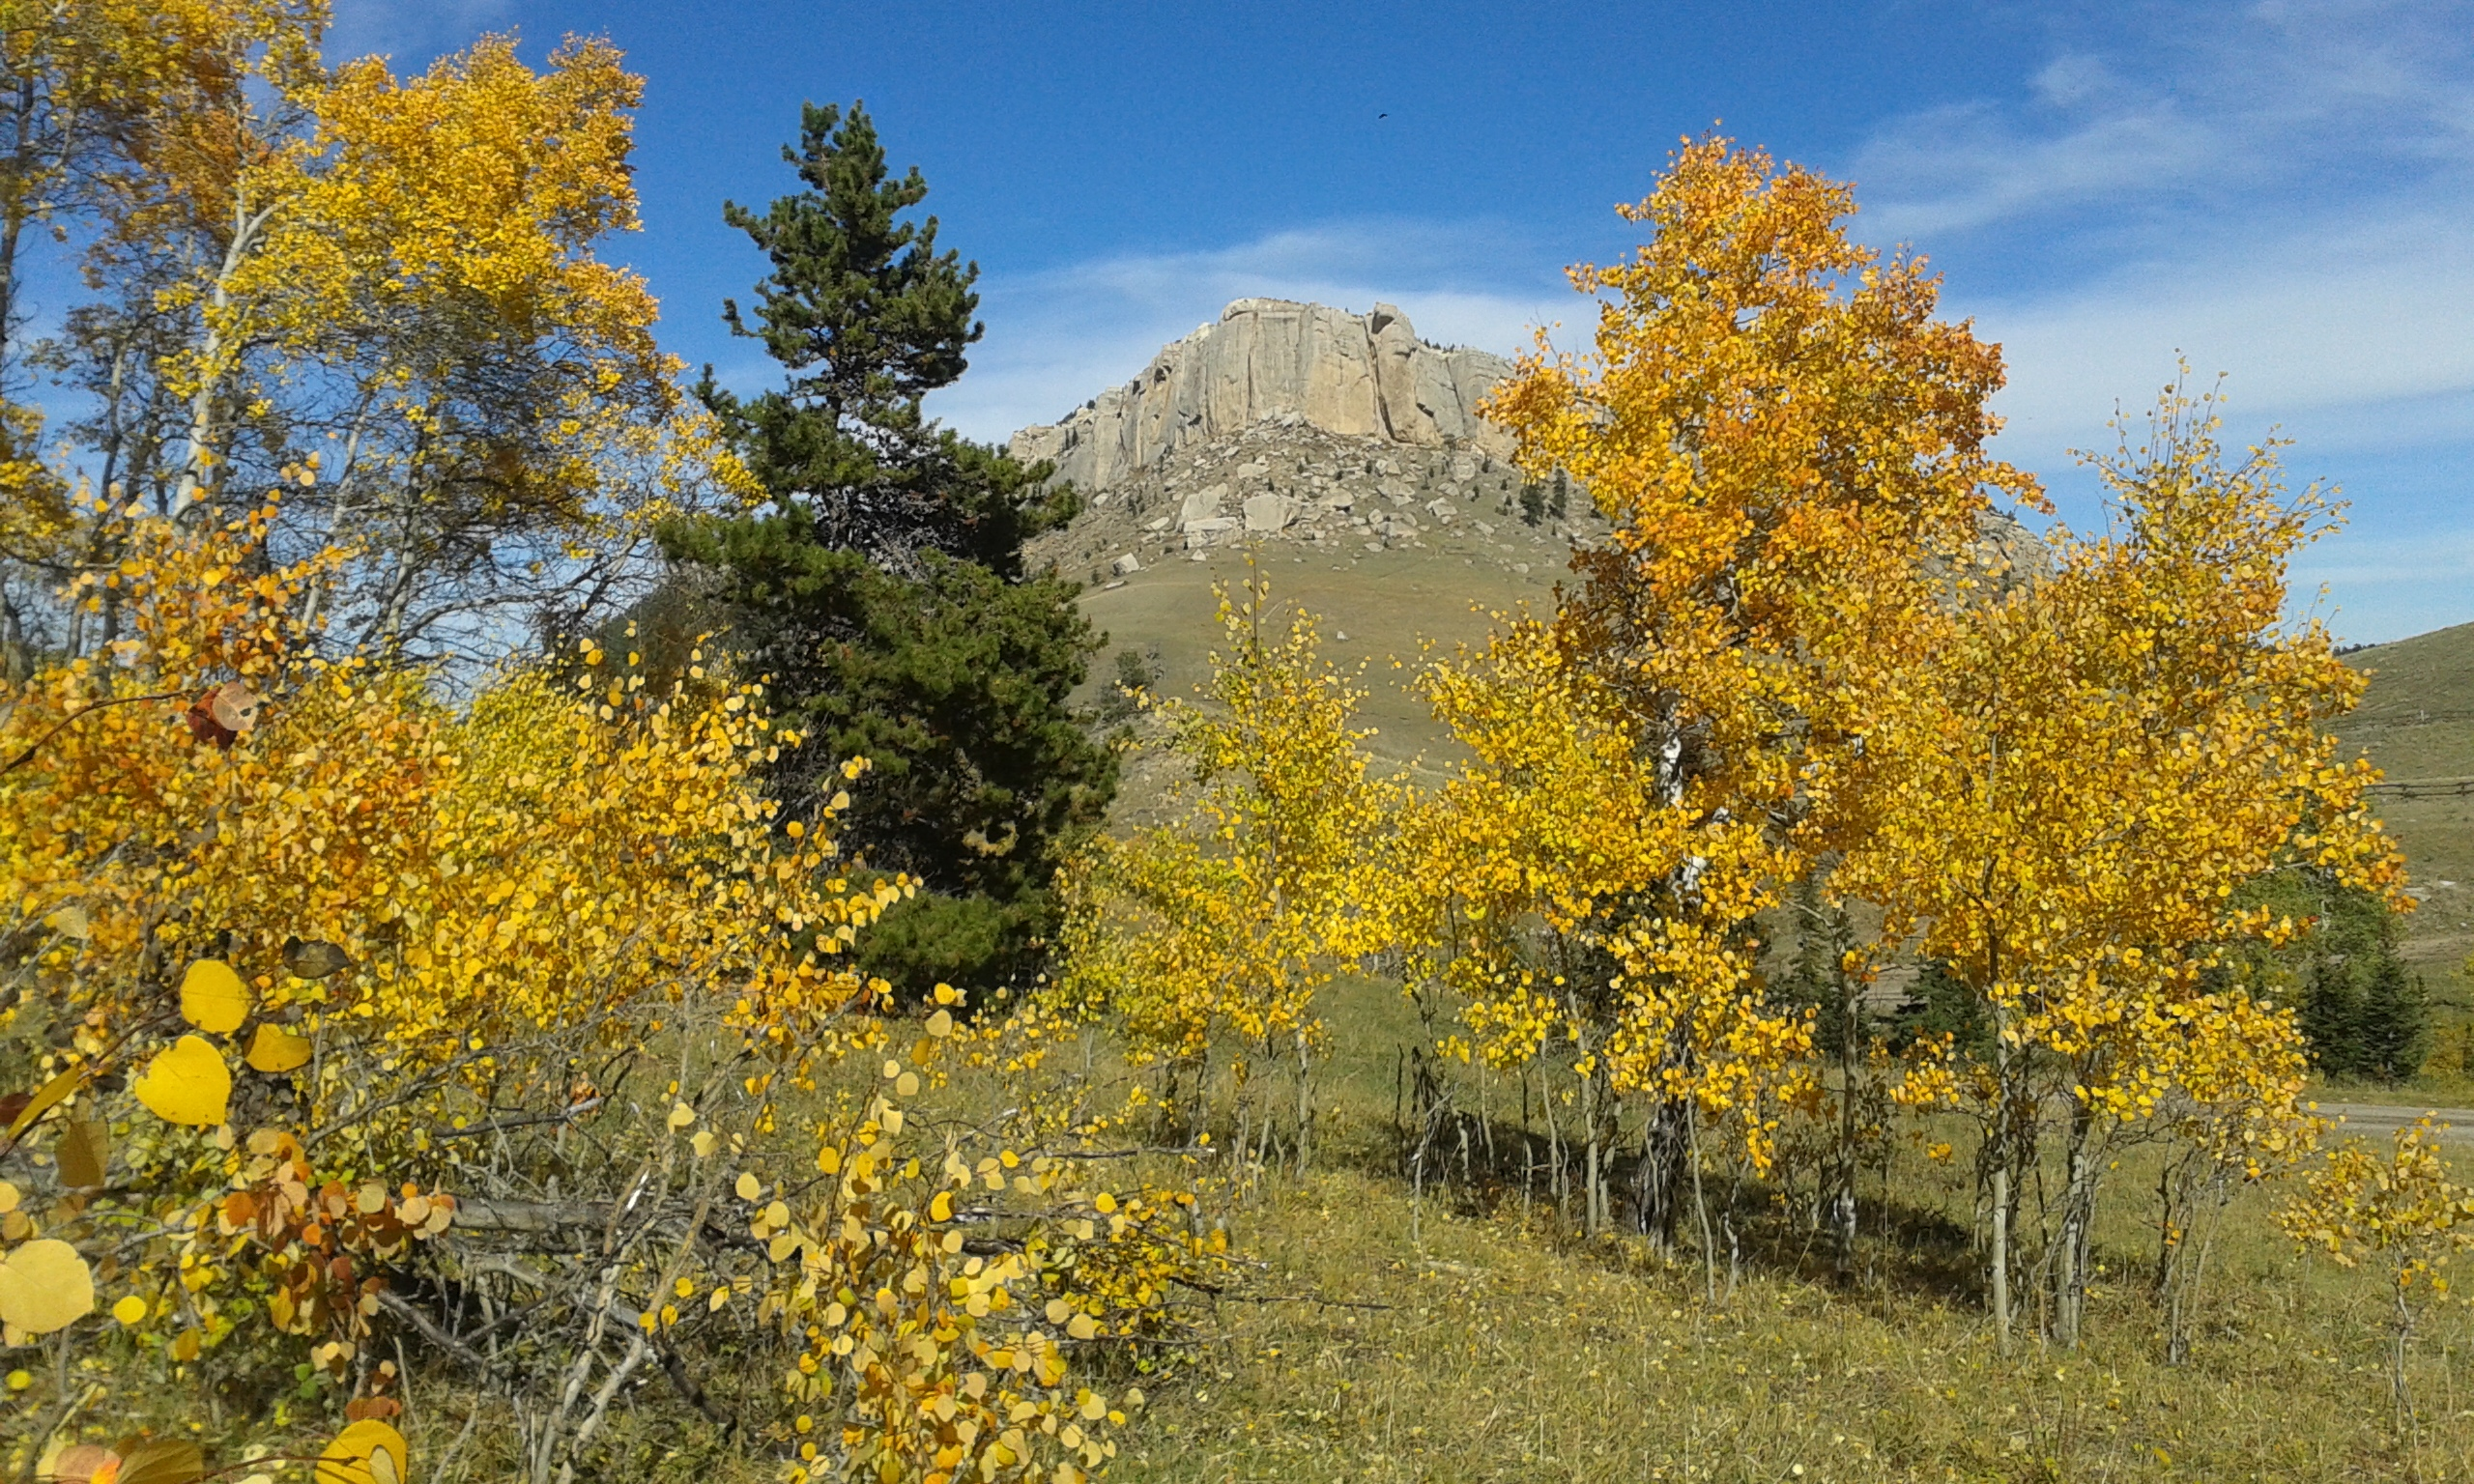 Photo of aspen trees